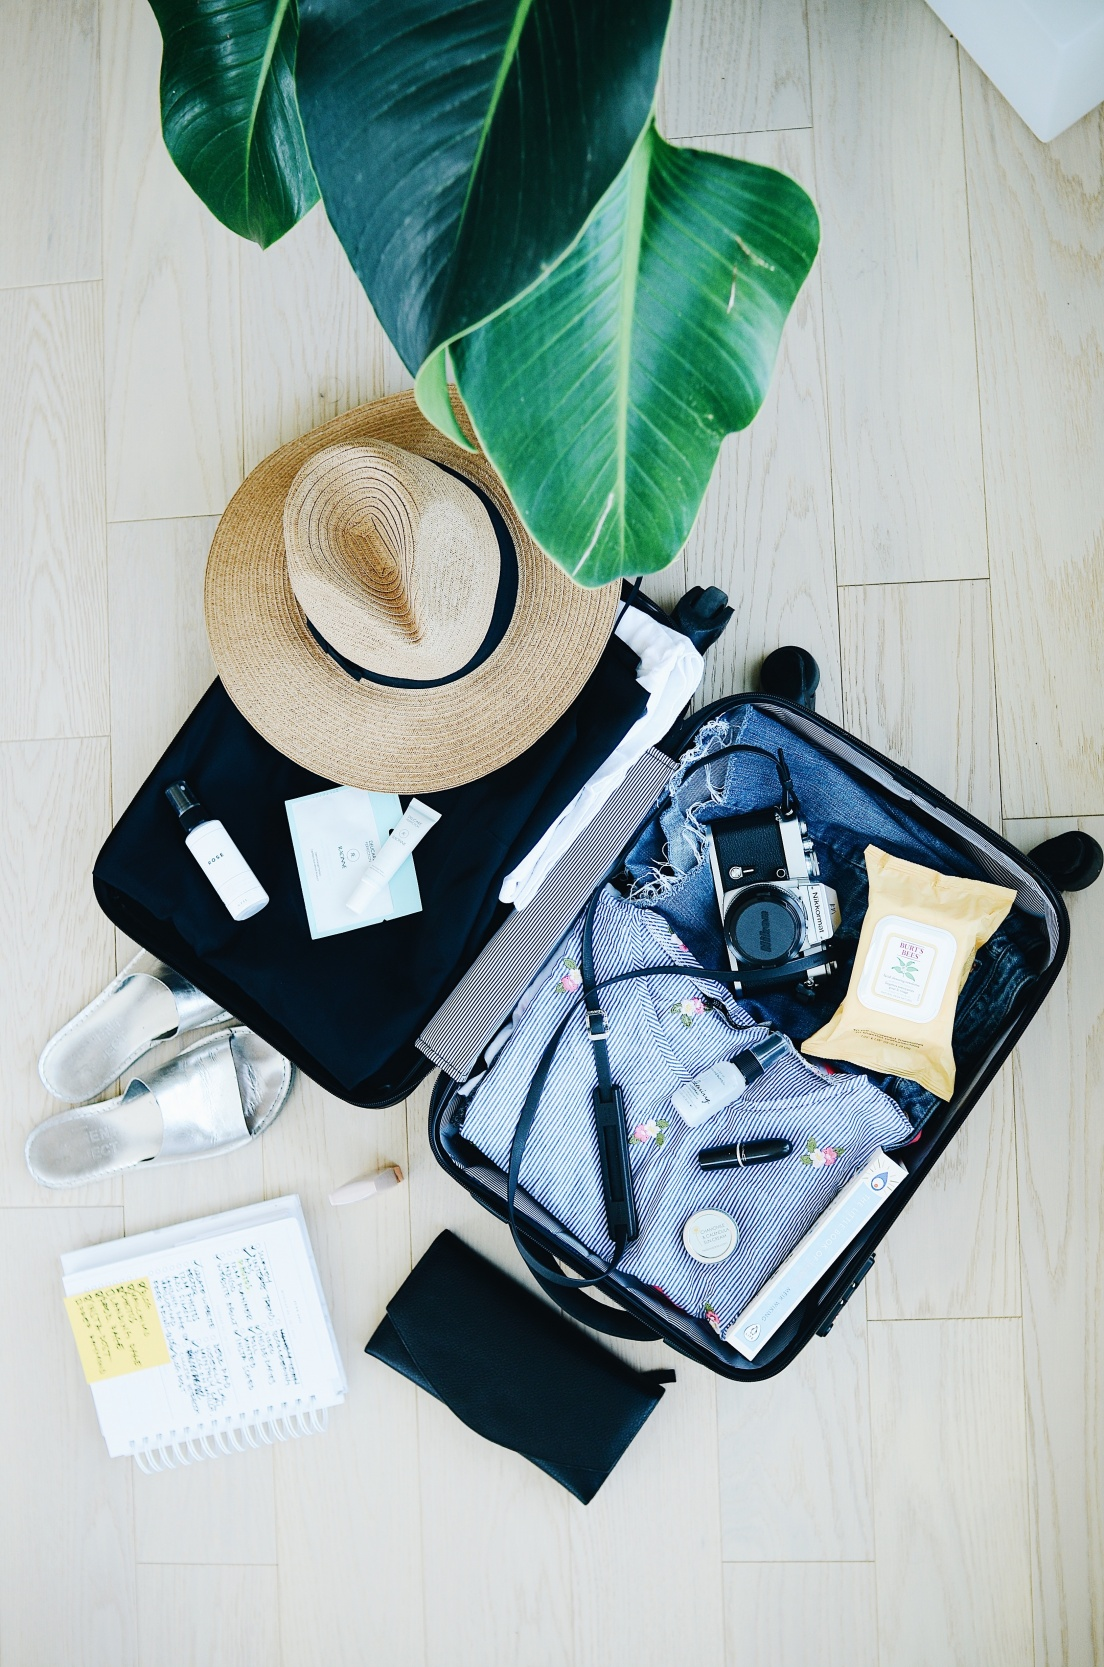 a-guide-to-packing-light-for-a-weekend-tripa-guide-to-packing-light-for-a-weekend-trip.jpg